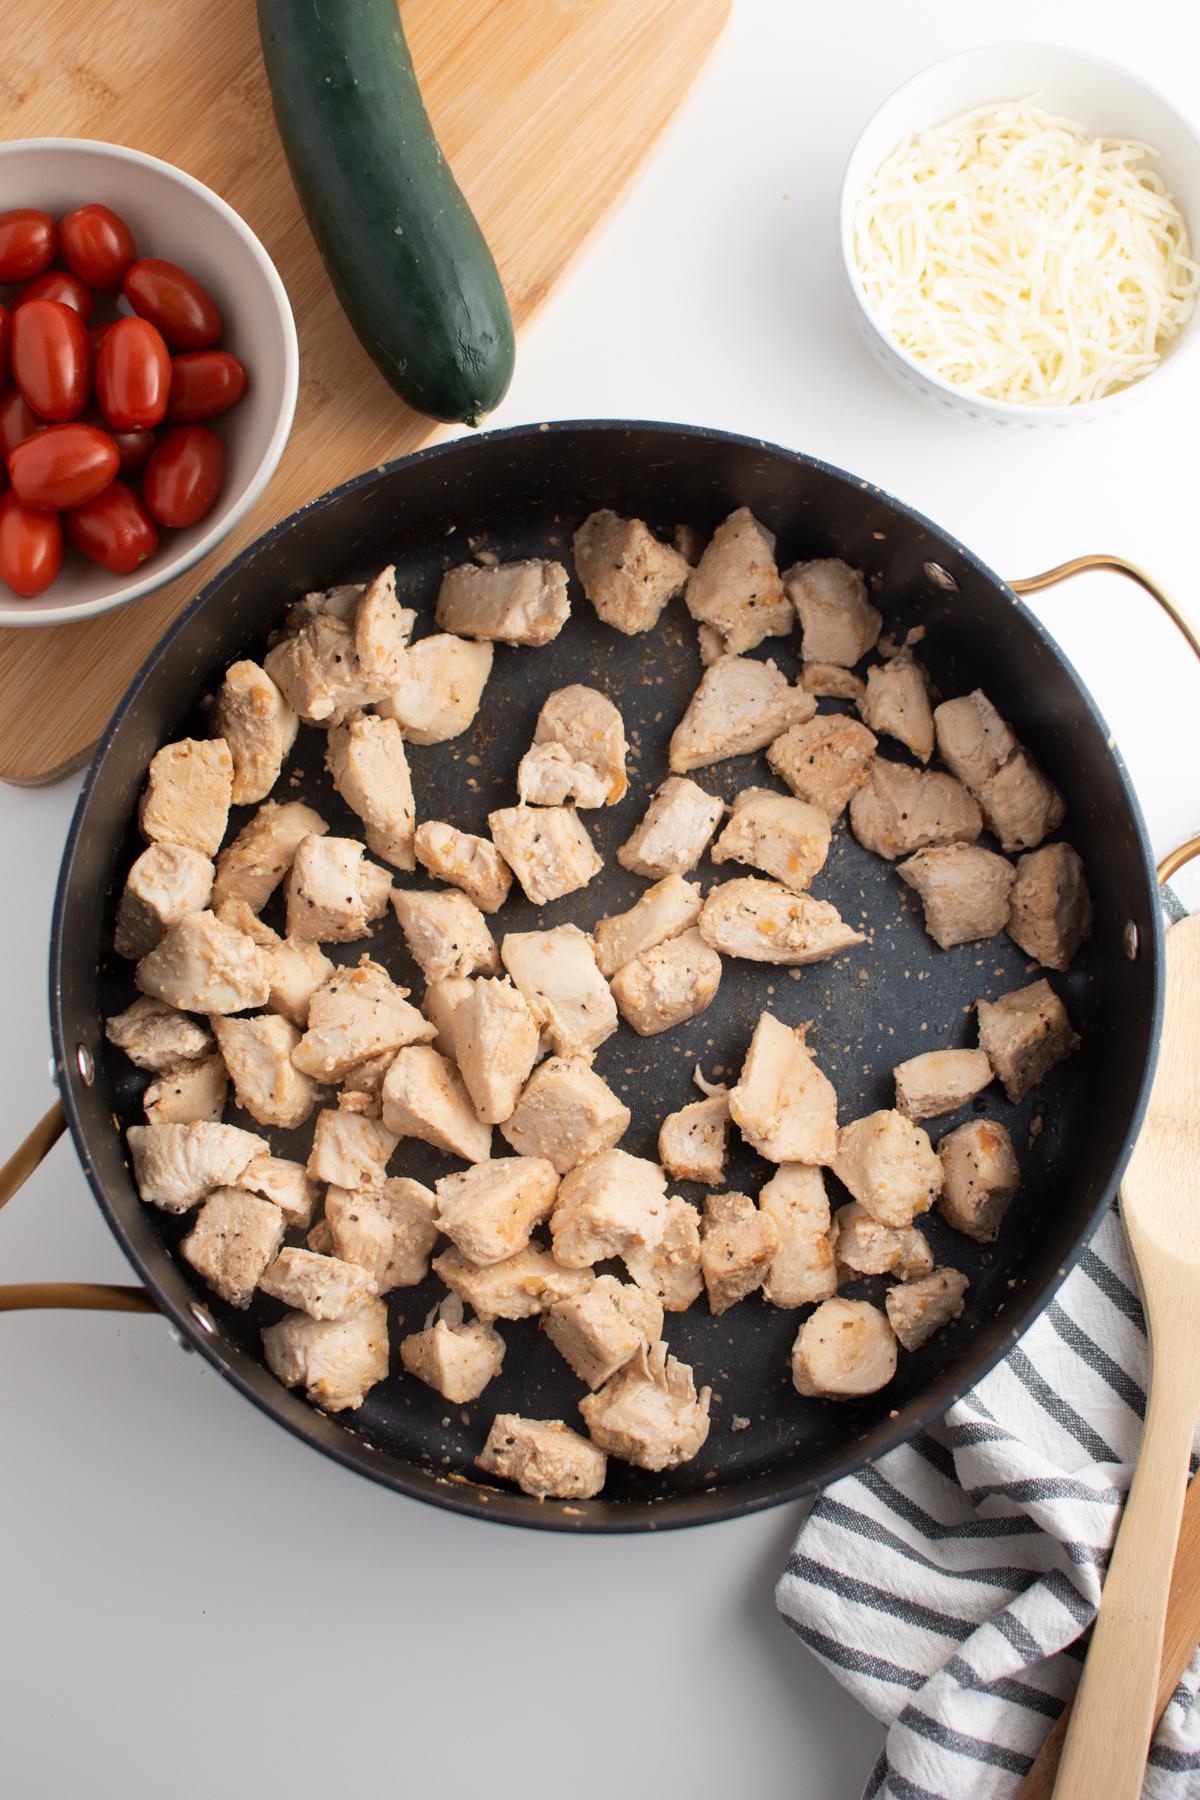 Cooked seasoned chicken in black skillet next to bowl of tomatoes and bowl of cheese.